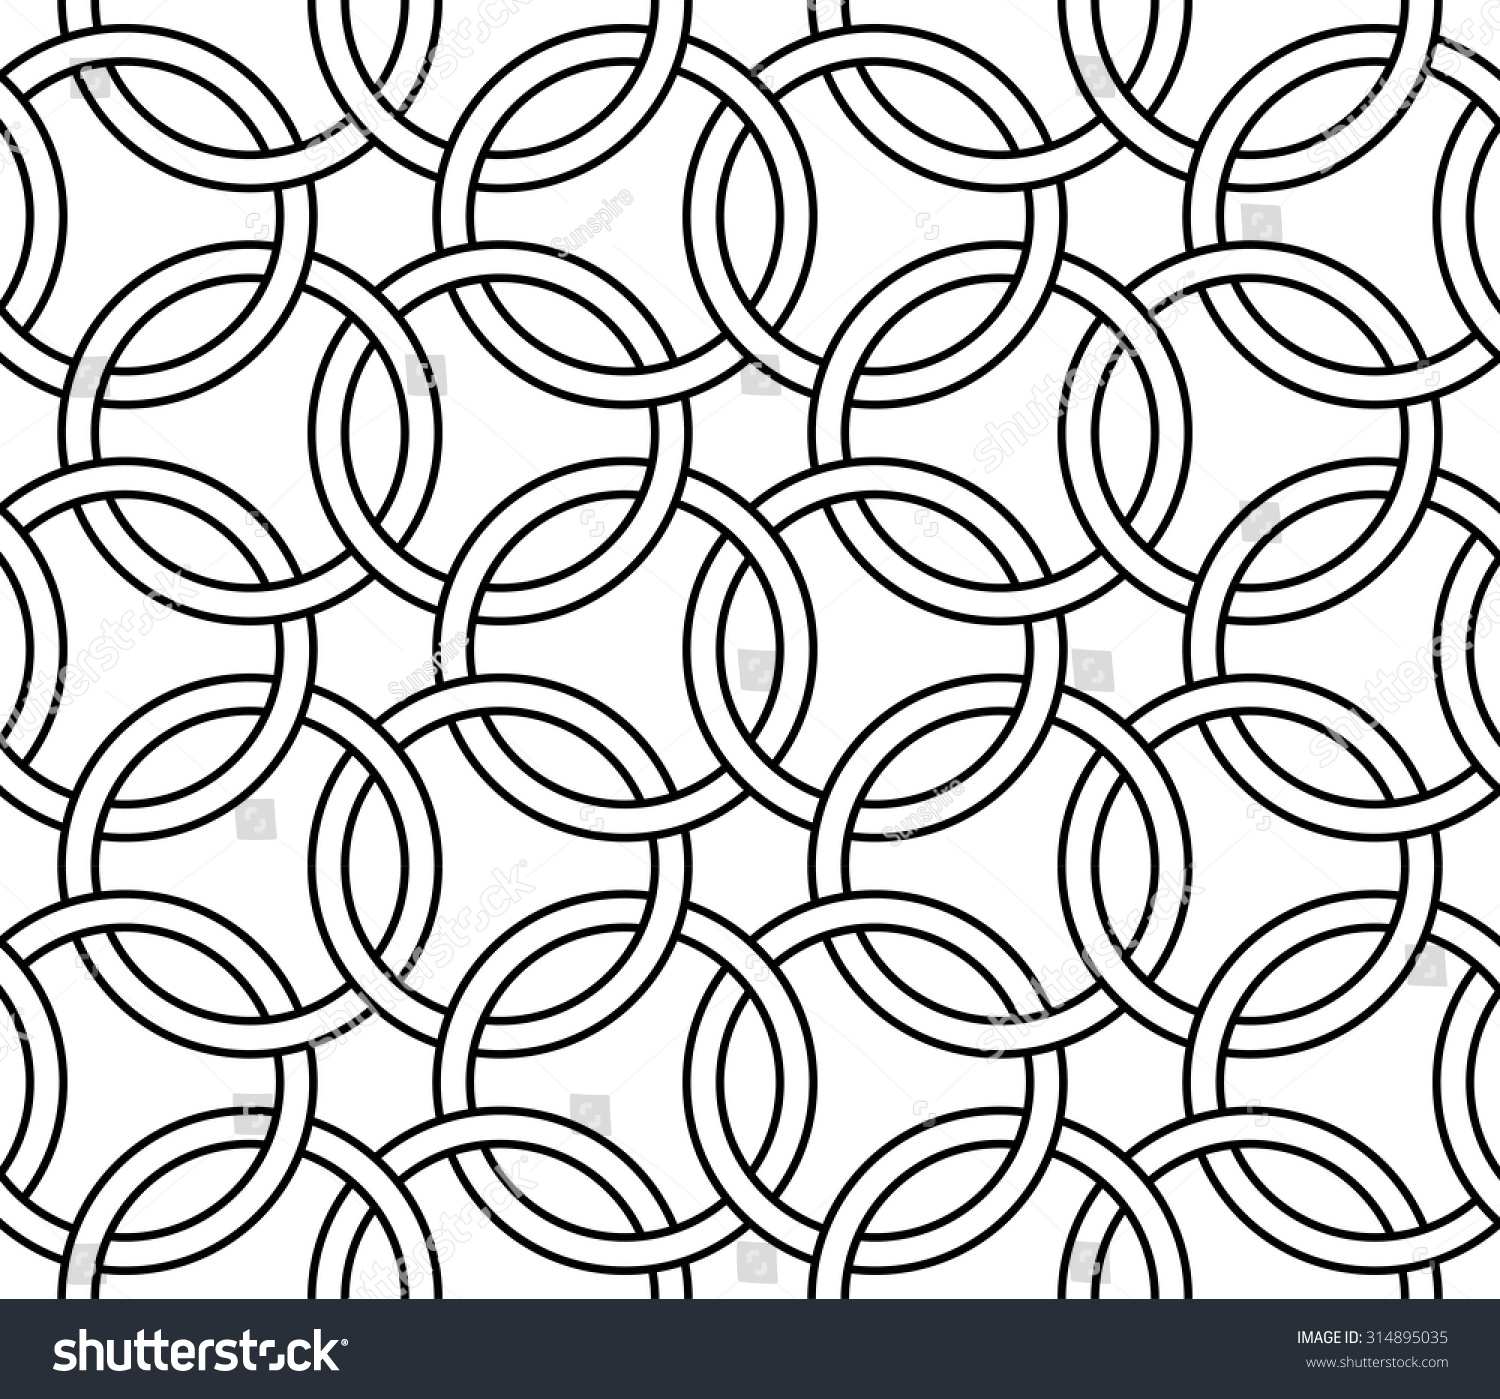 Black bed sheet texture - Vector Modern Seamless Pattern Geometry Circles Black And White Textile Print Stylish Background